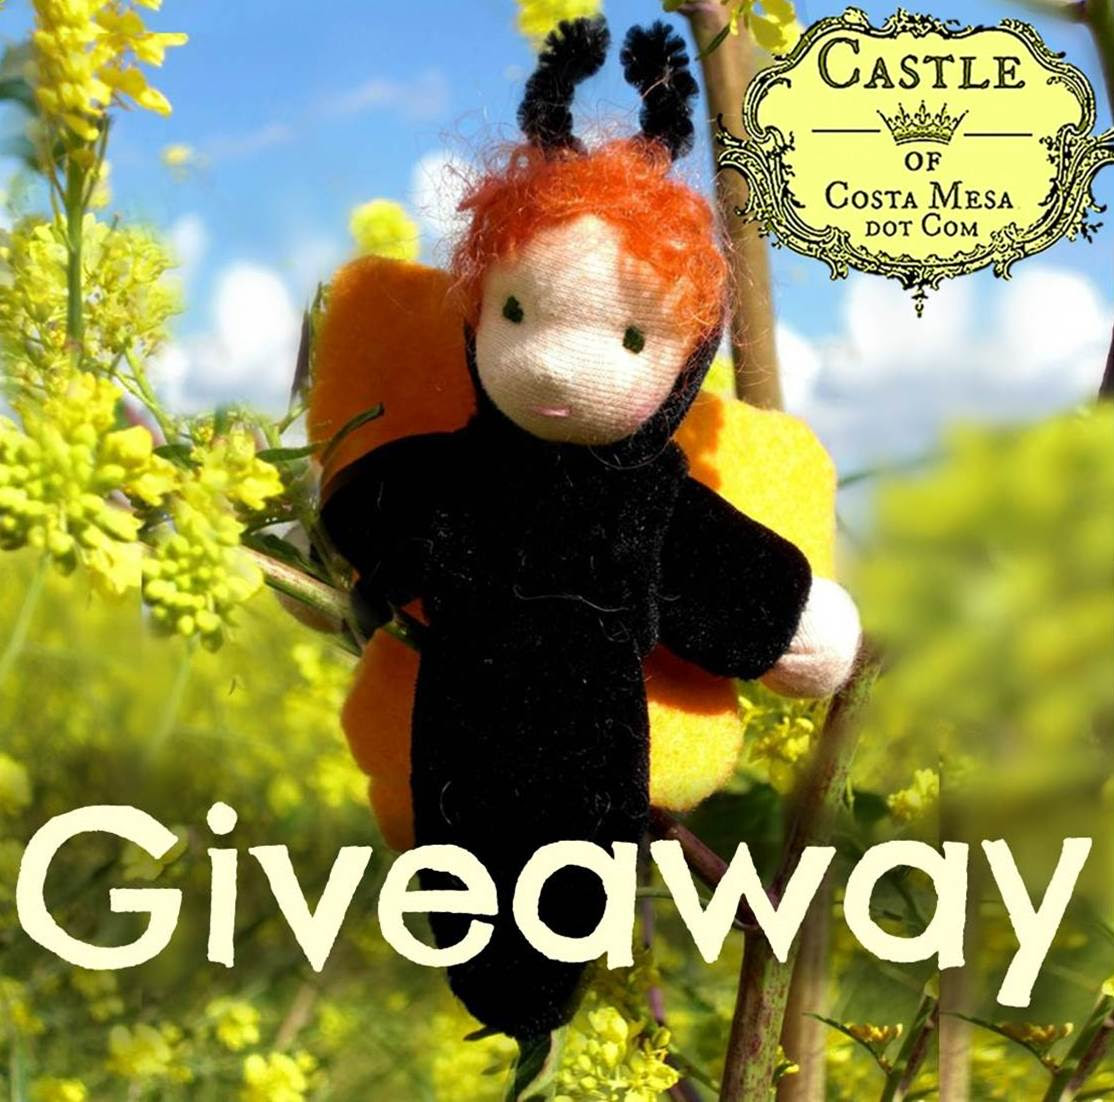 Enter to win a Handmade Caterpillar Doll That Turns Into a Butterfly - Ends 03/18/13